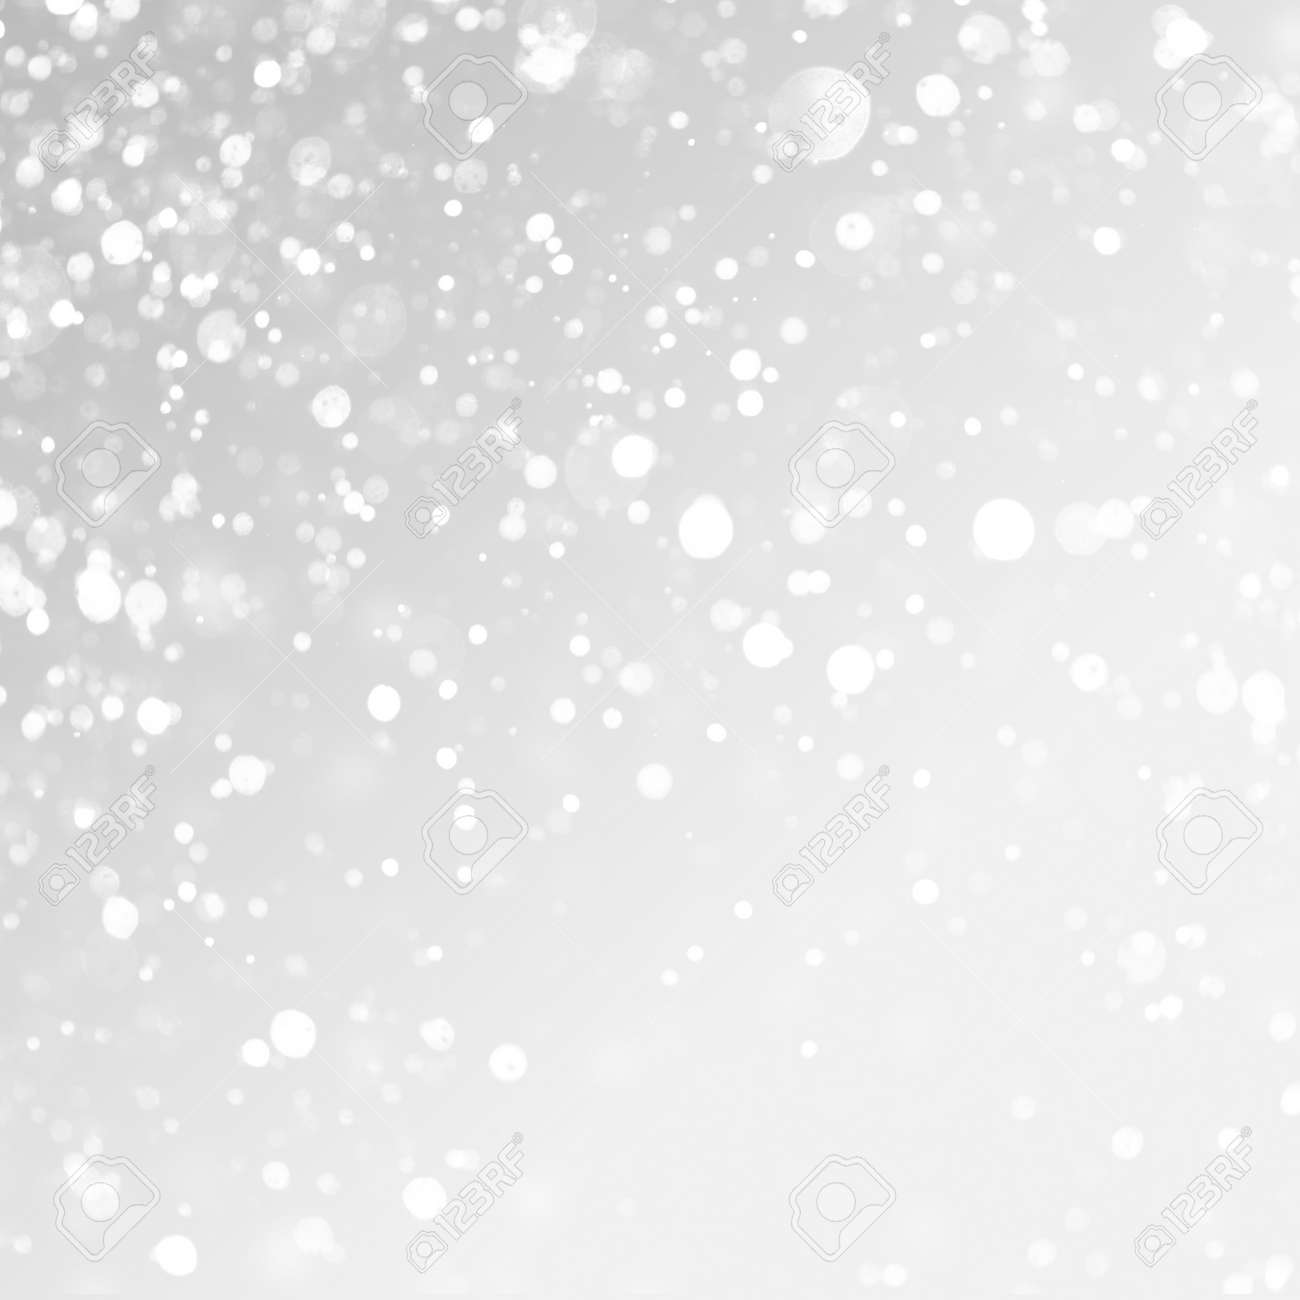 christmas background. Snow on grey background. - 47455970